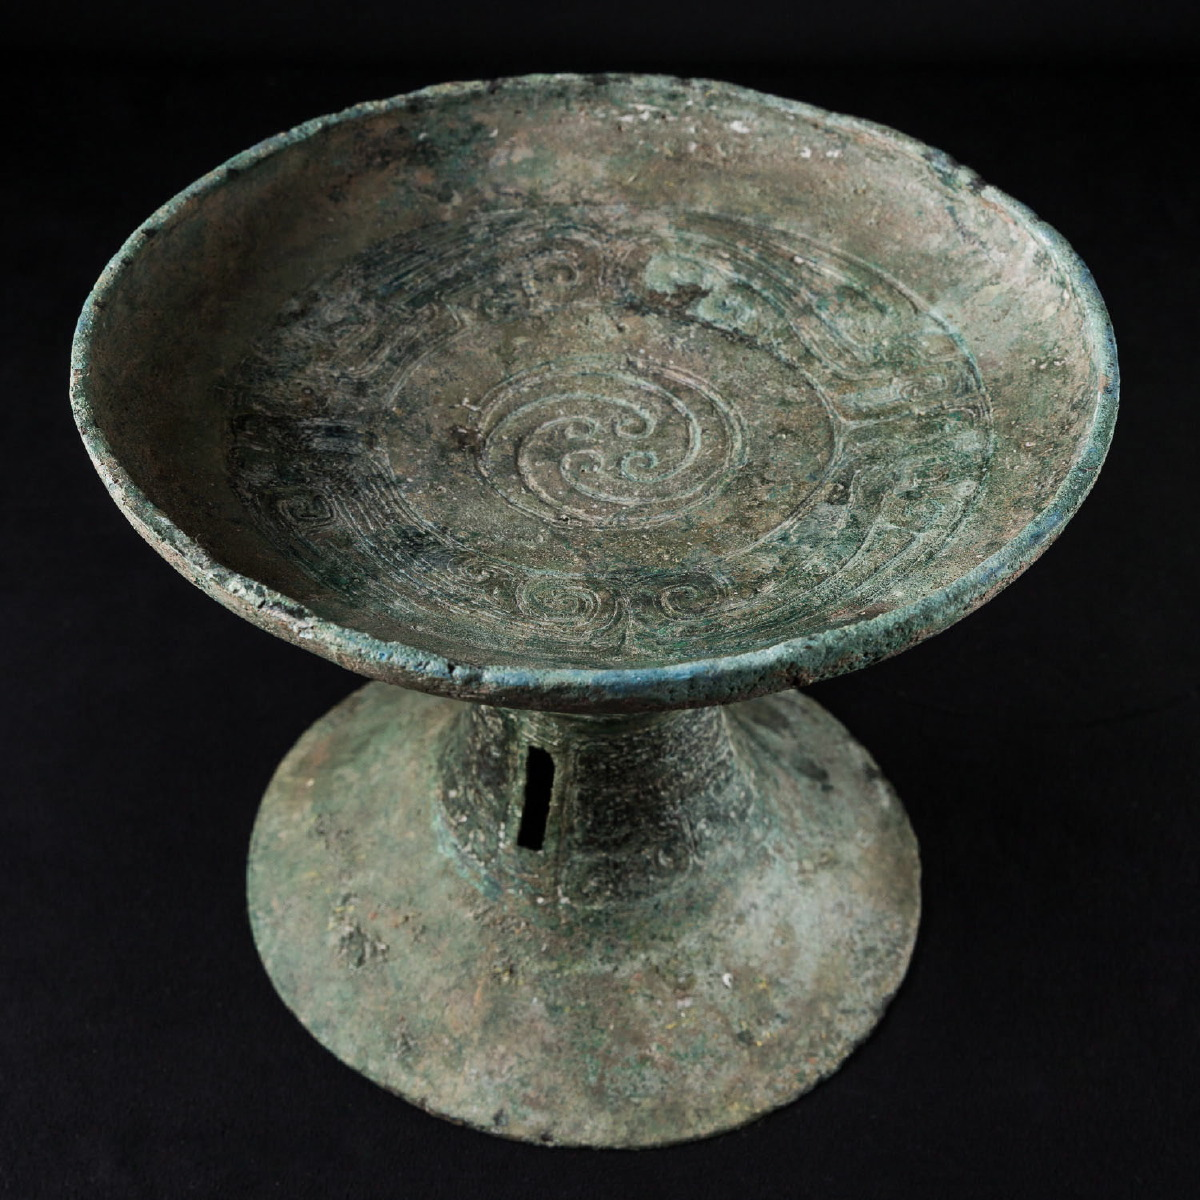 Photo of footed-bowl-pan-type-bronze-zhou-dynasty-gallery-golconda-specialist-ancient-chinese-art